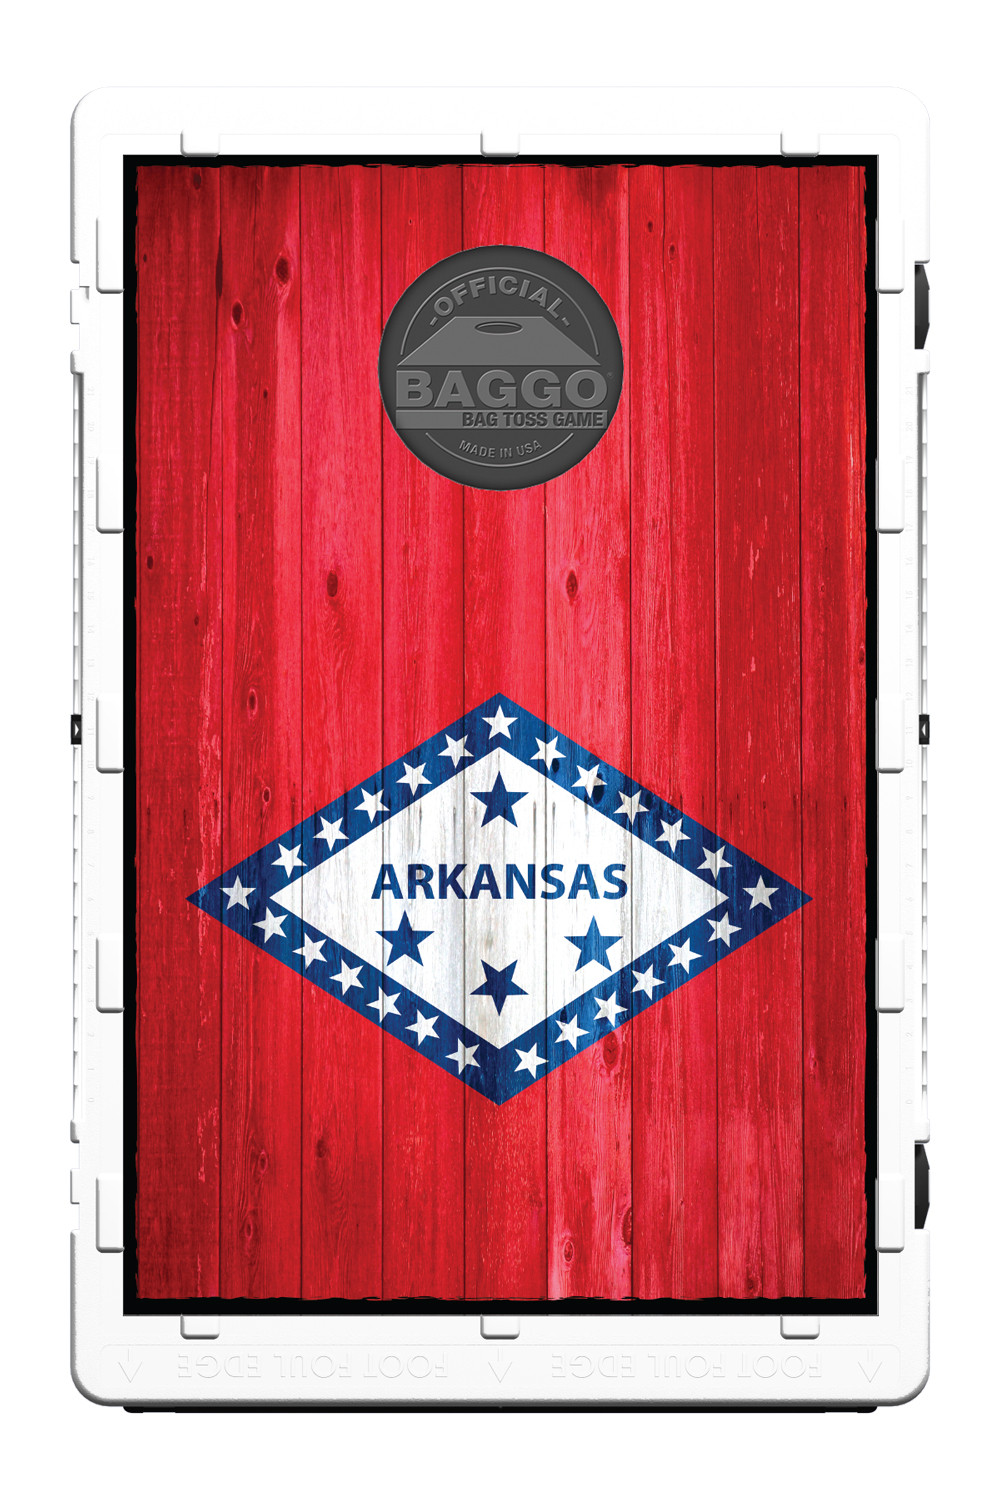 Arkansas Flag Heritage Edition Screens (only) by Baggo